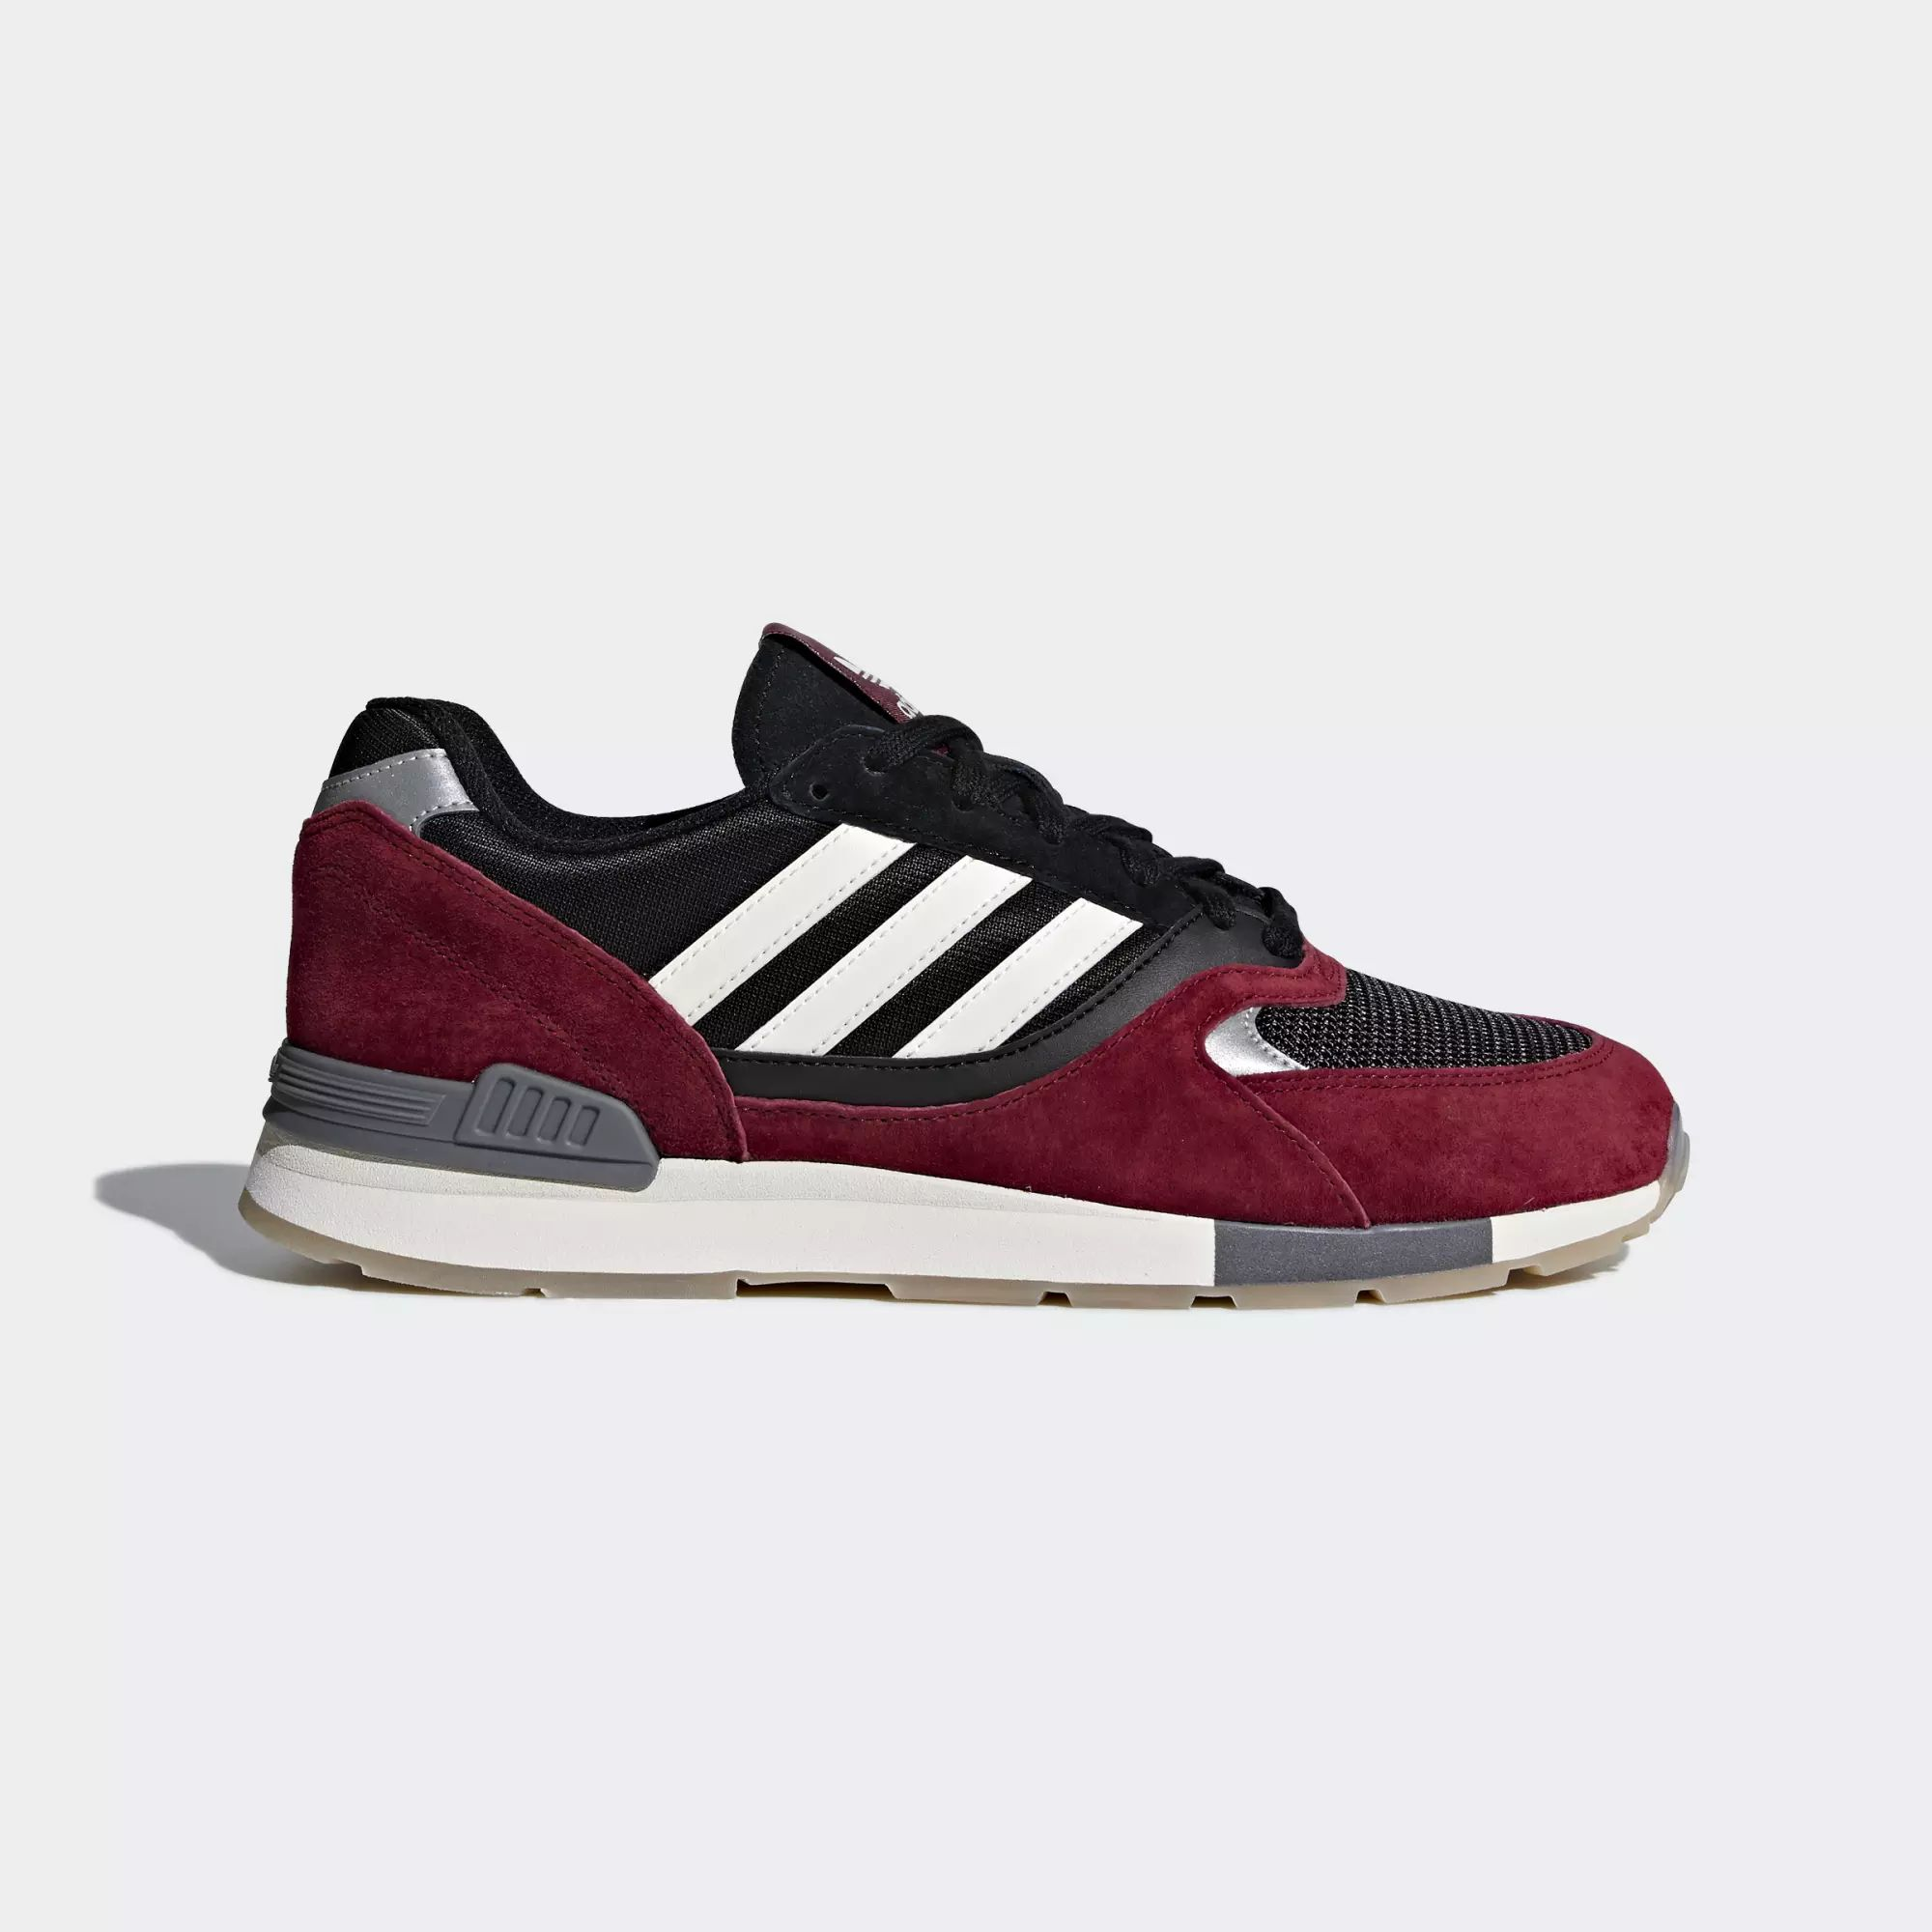 Adidas Quesence Shoes - Collegiate Burgundy / Chalk White / Core Black